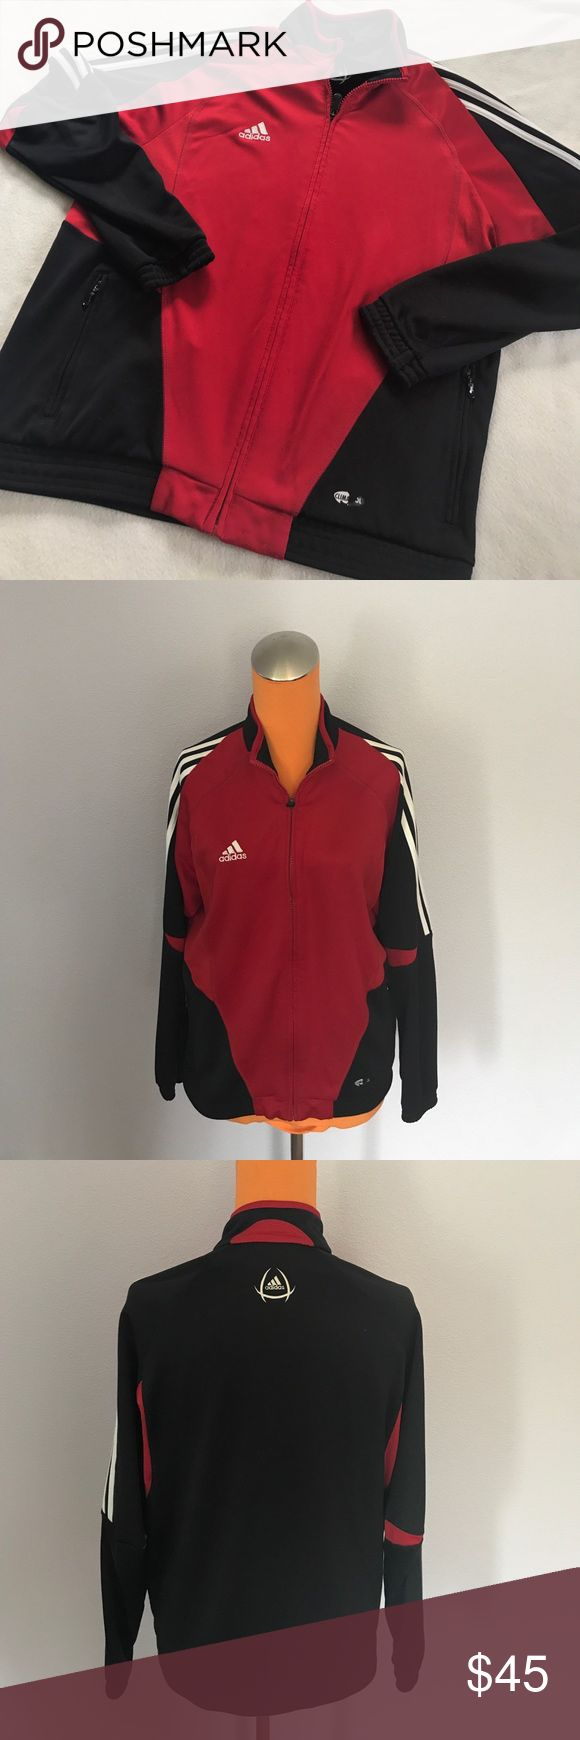 ADIDAS Red and Black with White Stripe Zip Up Red body. Has iconic three stripe up the side of sleeves. Zips on the front. Side zipper pockets. Great soccer warm up or other athletic jacket. Bundle 2+ items for a discount. Adidas Jackets & Coats Performance Jackets